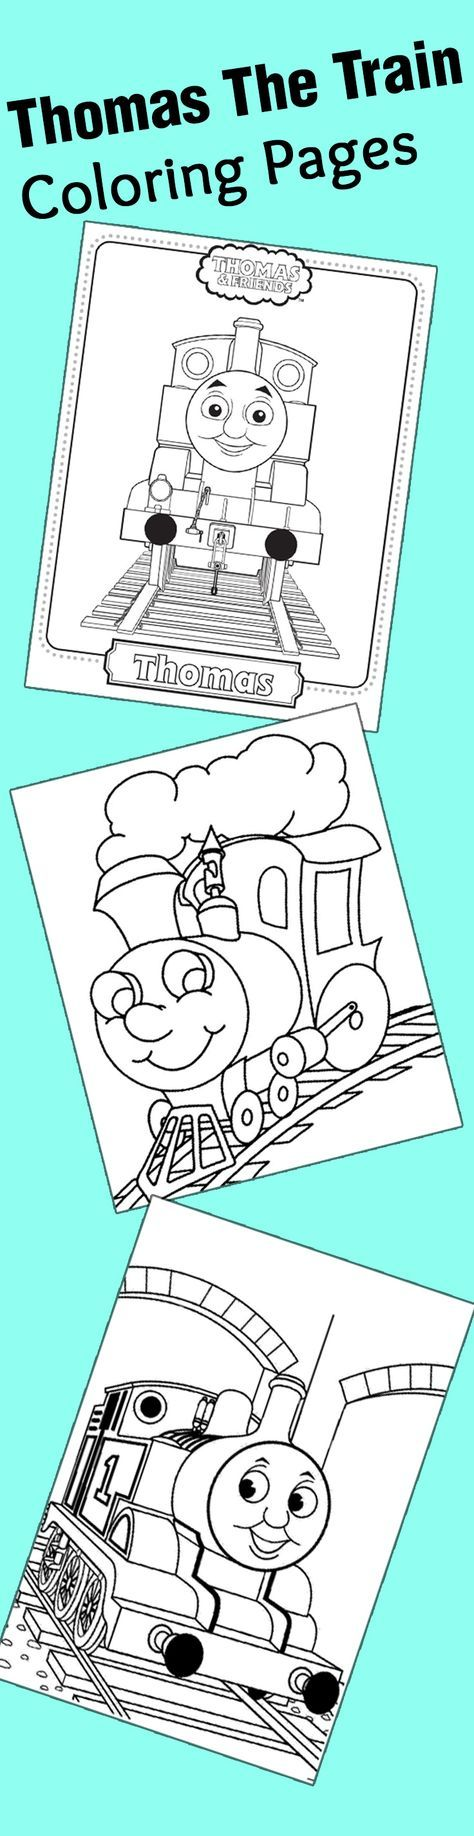 Top 20 Thomas The Train Coloring Pages Your Toddler Will Love Engine And His Friends Have Successfully Chugged Their Way Into Hearts